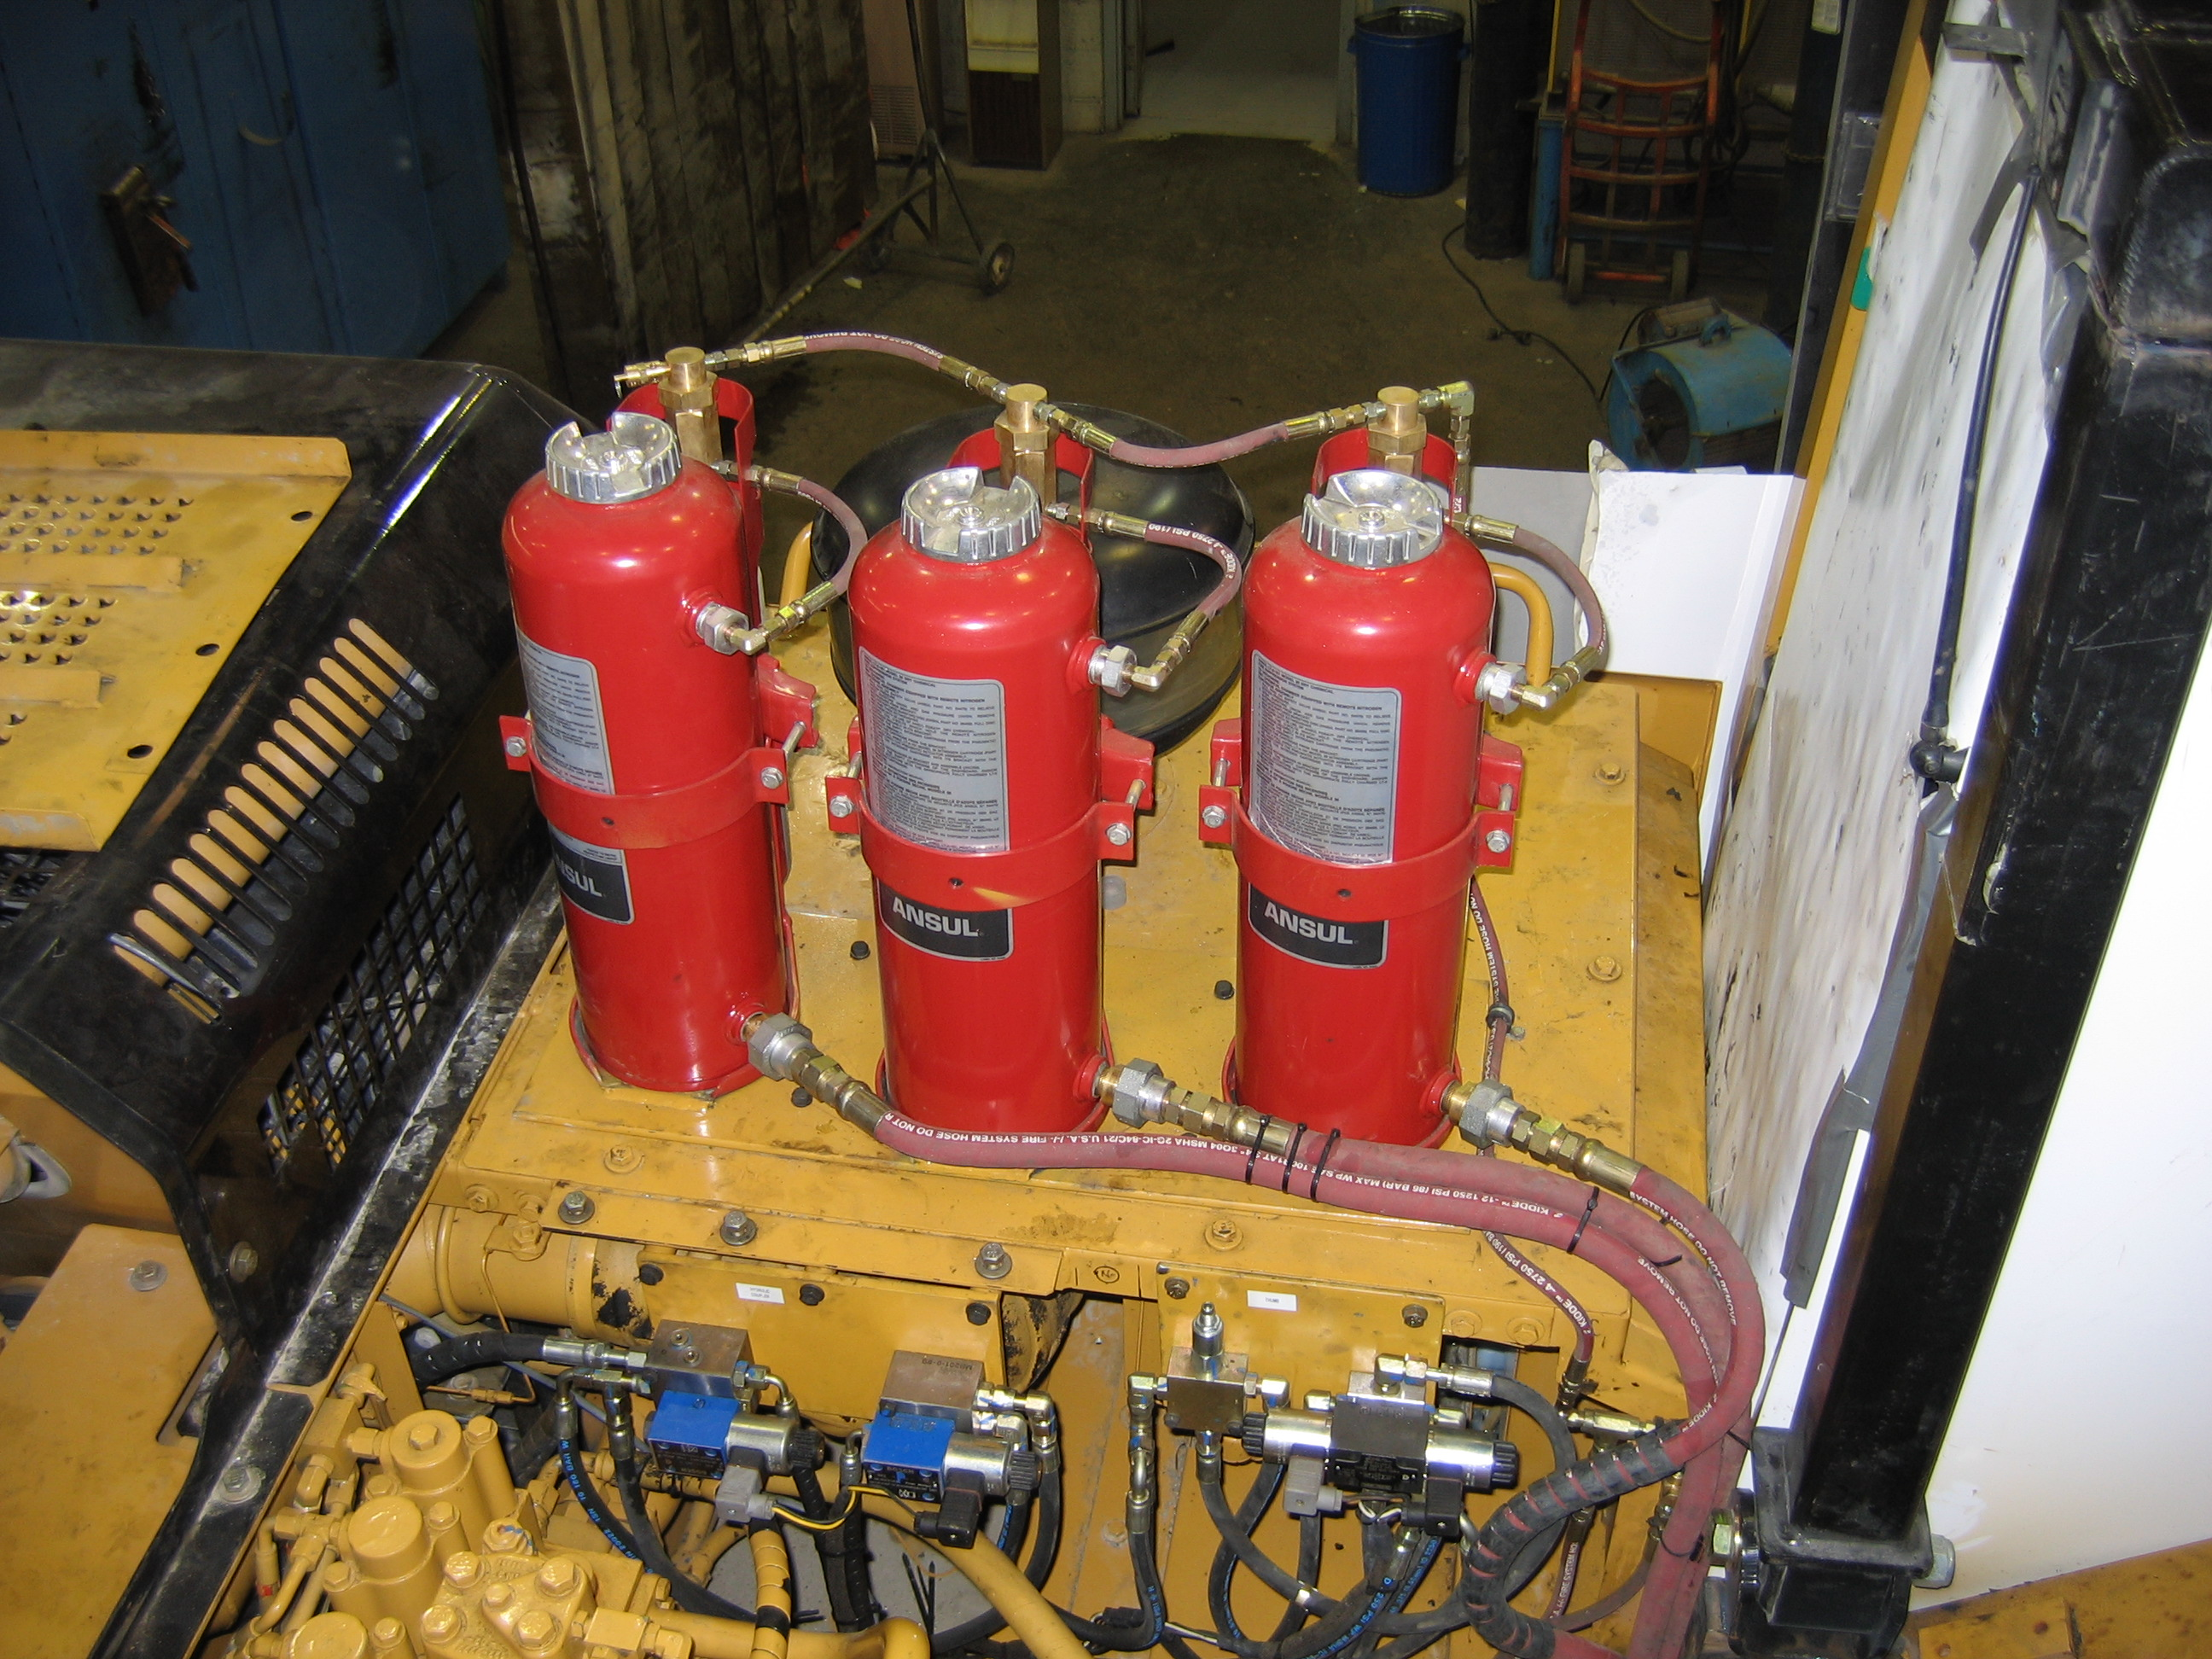 Vehicle Fire Systems : Vehicle fire suppression ansul system installation tn